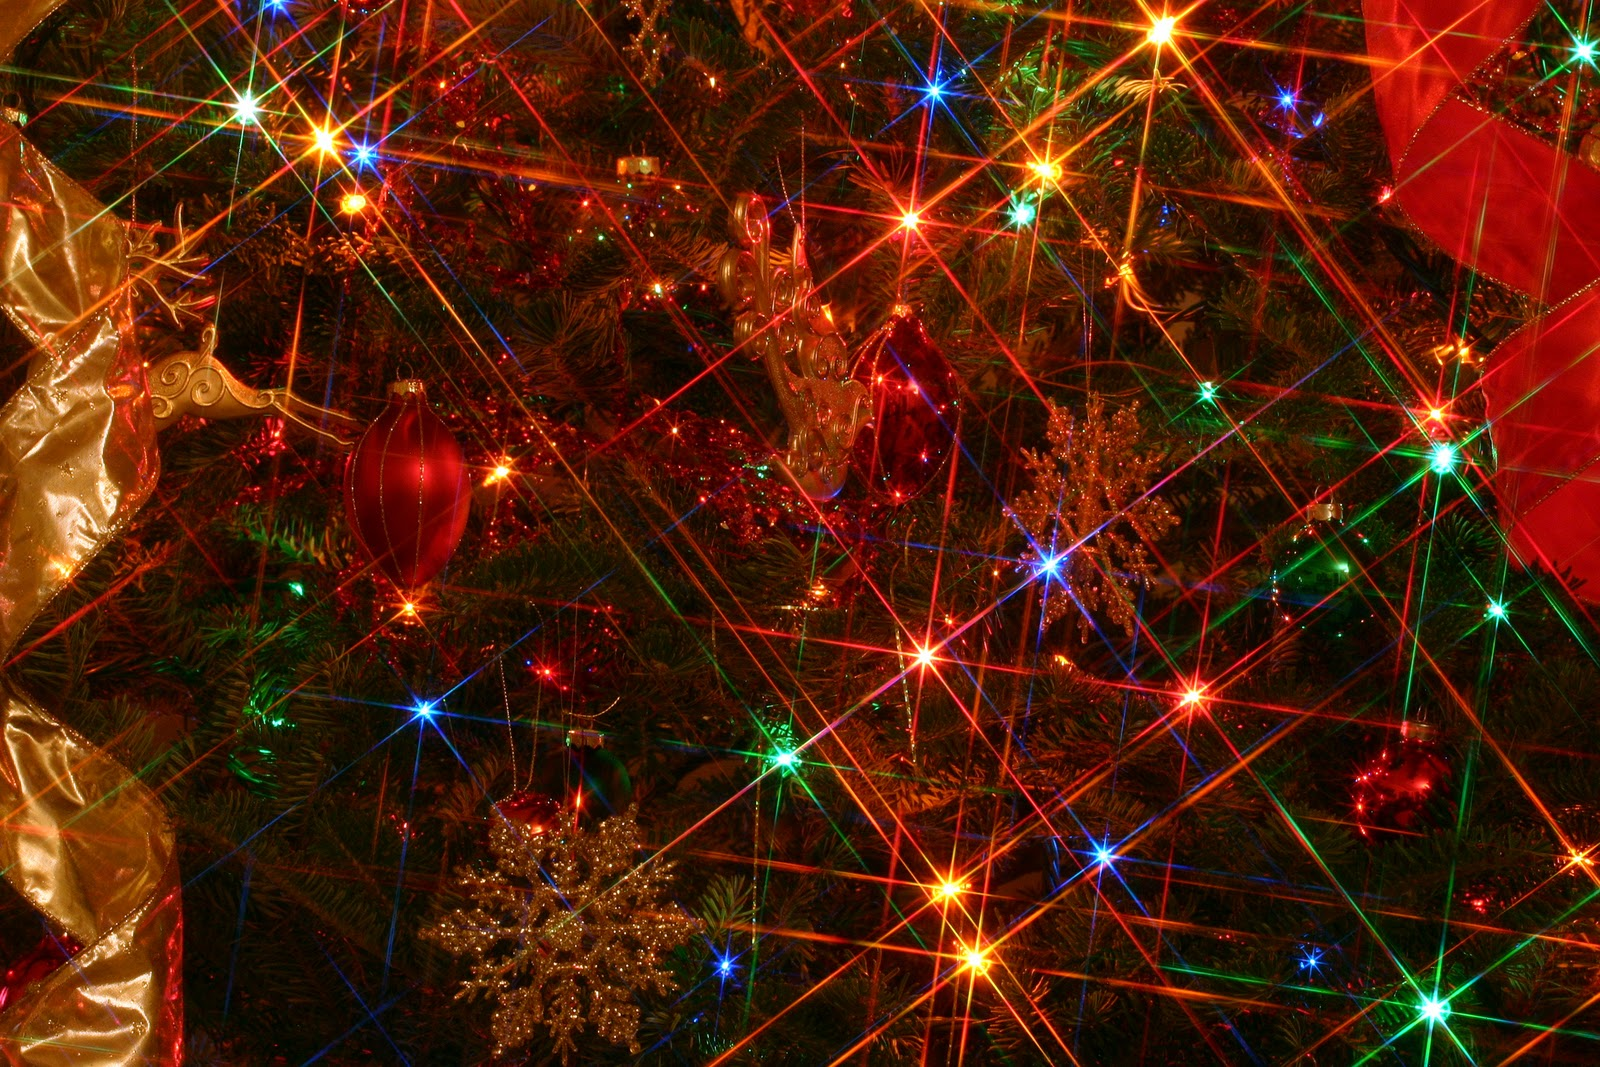 Pin Christmas Lights Hd Wallpaper Christmas Lights Images 1600x1067